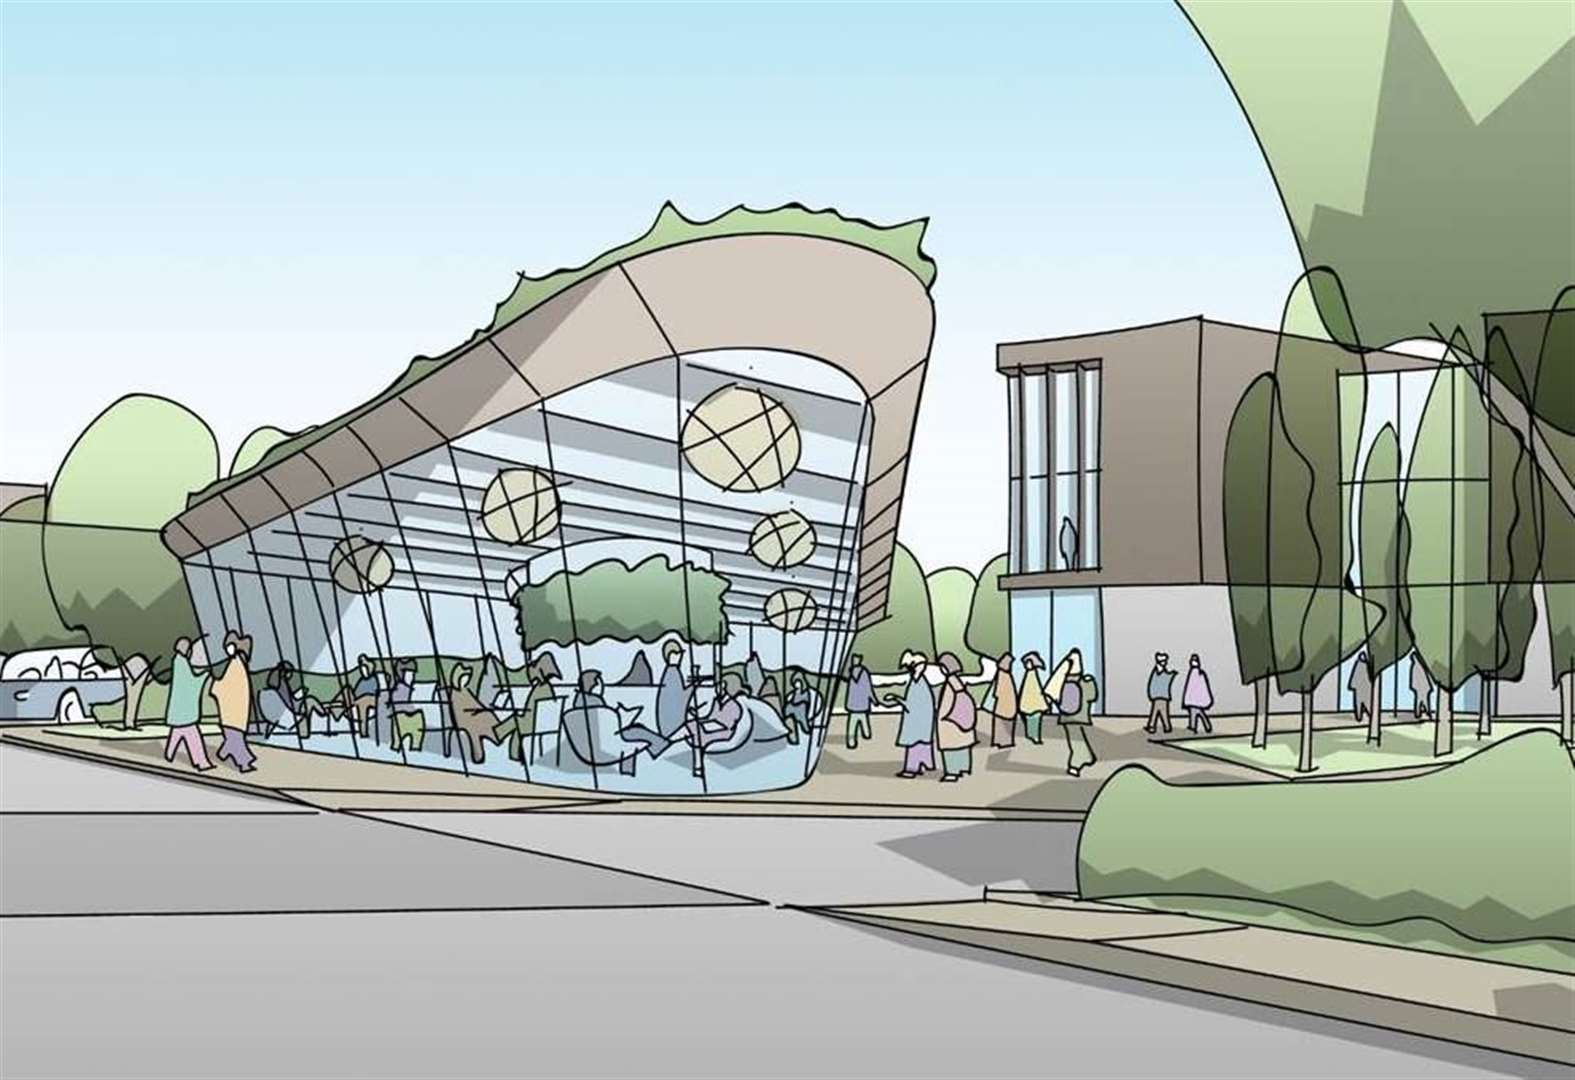 Building work starts in January on the centre-piece of a multi-million Food Enterprise Zone